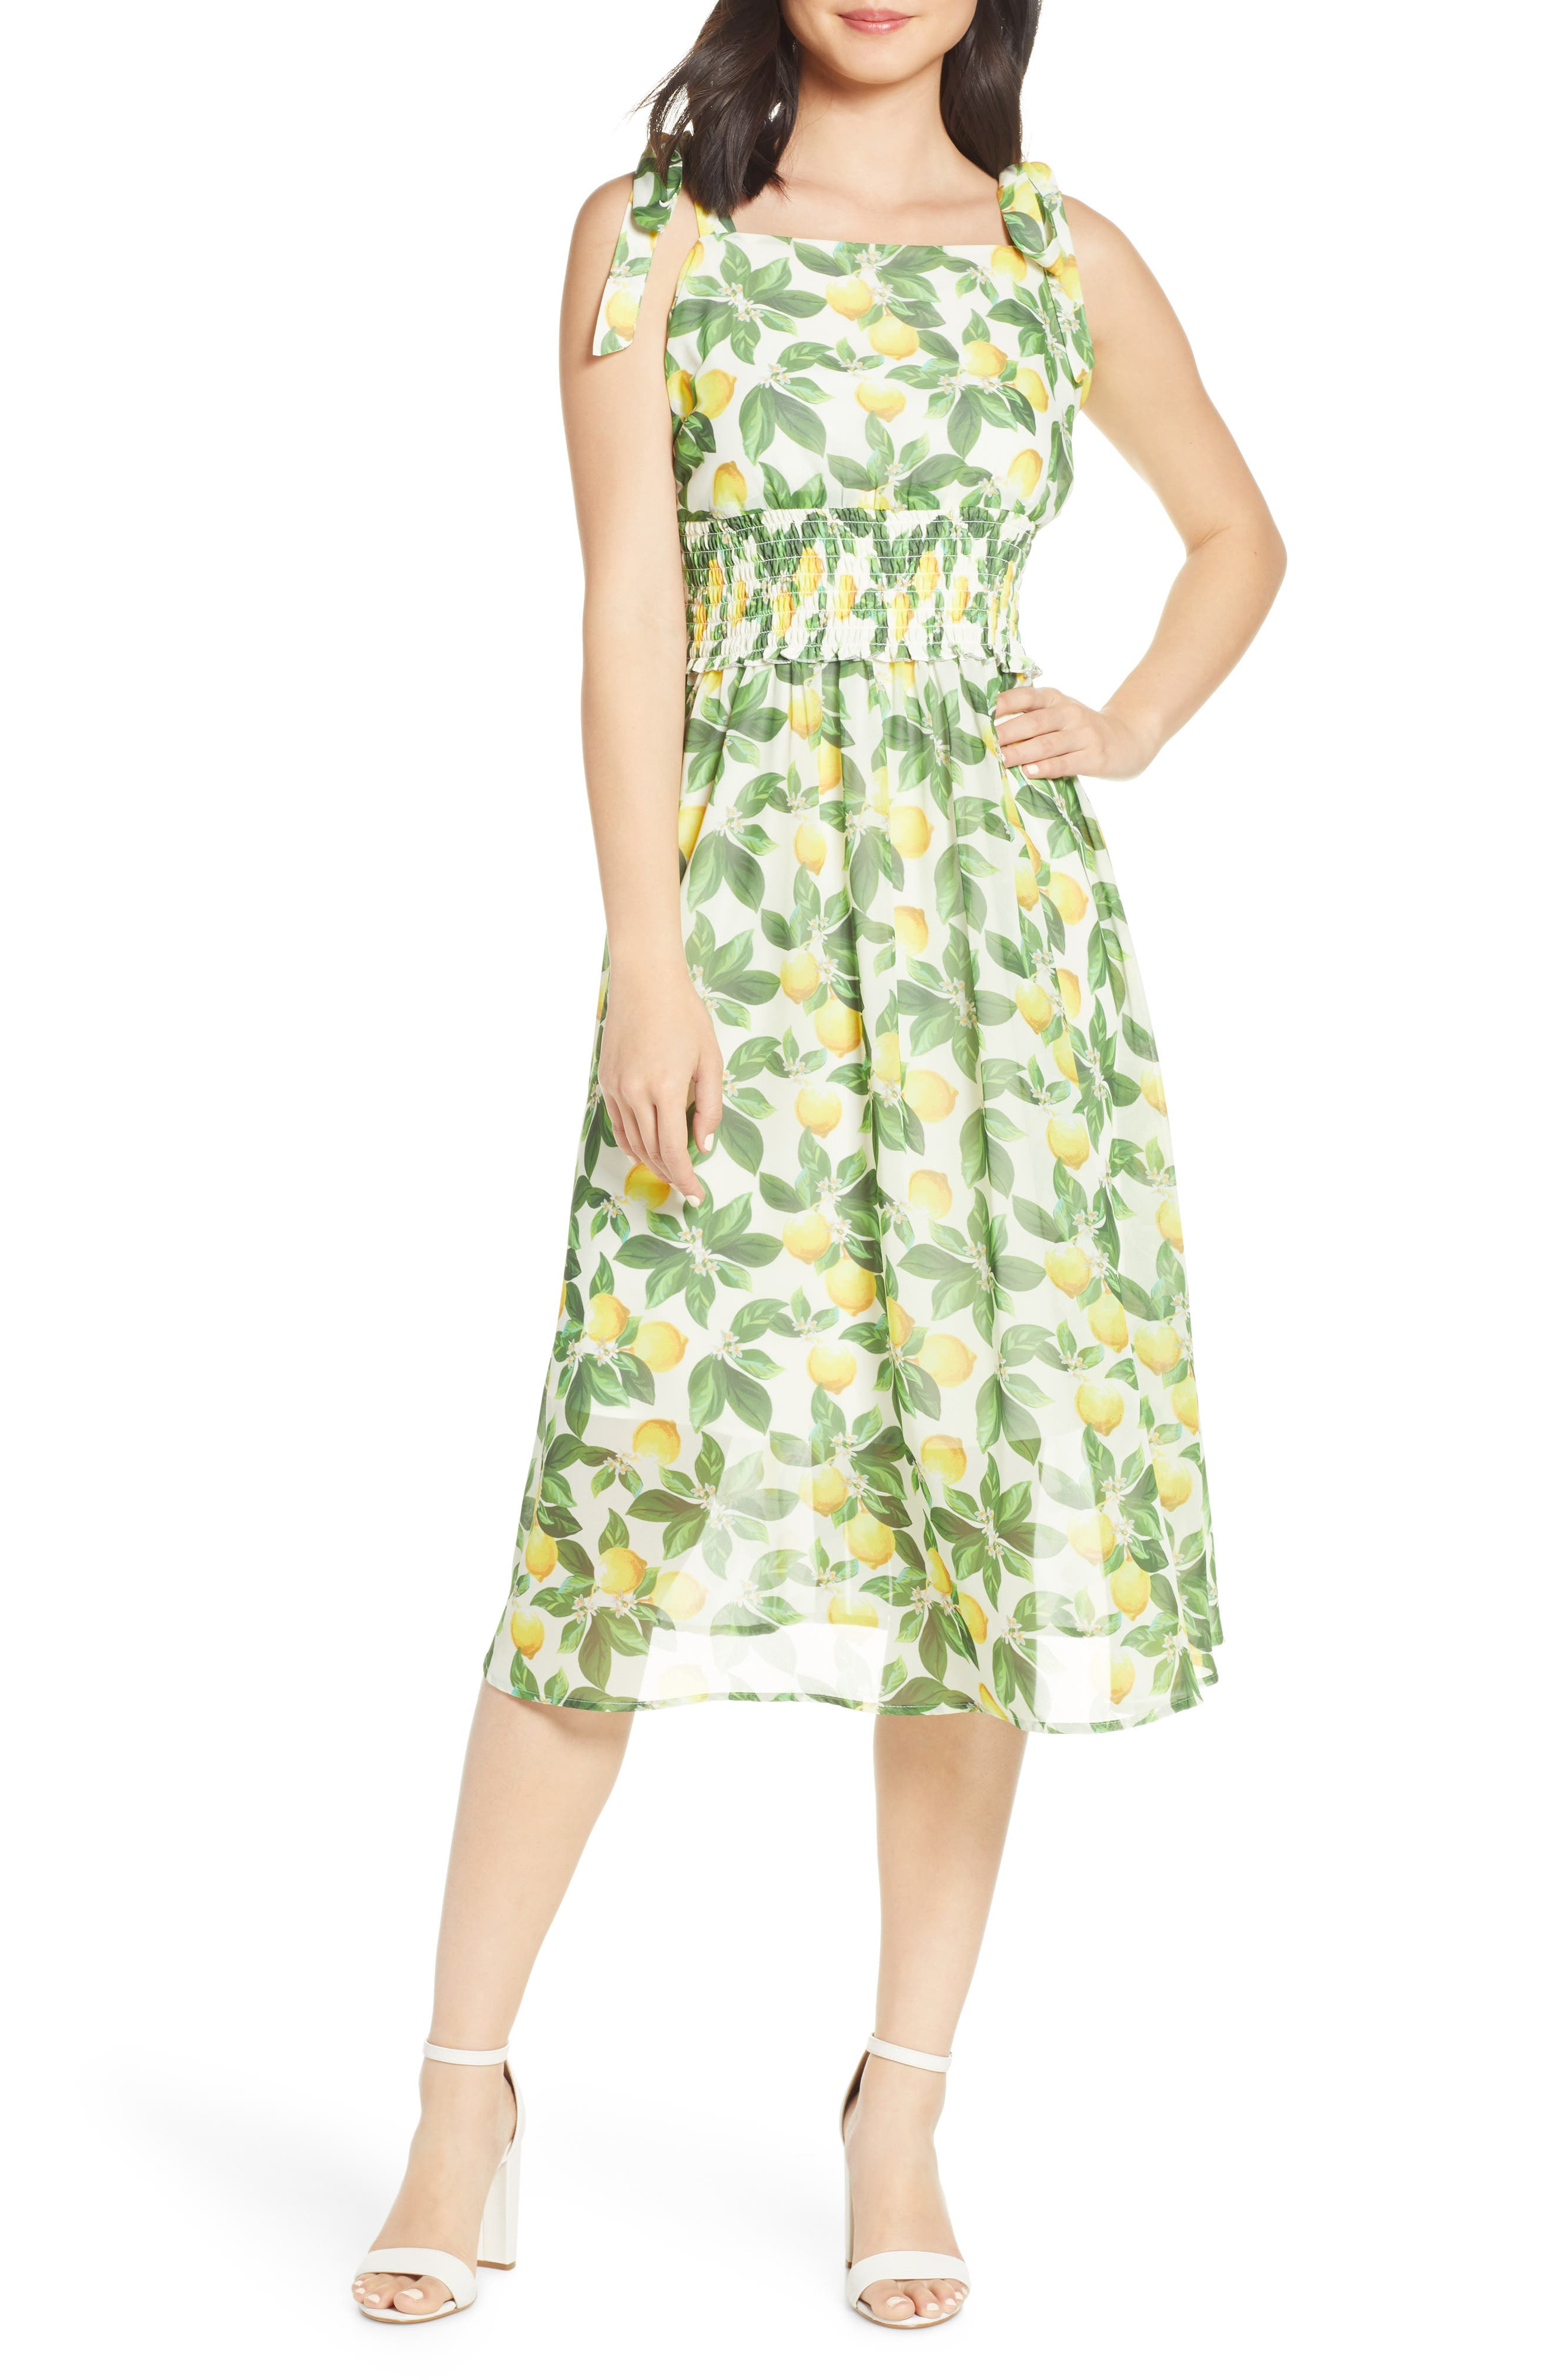 Sam Edelman Lemon Print Chiffon Sundress, Ivory